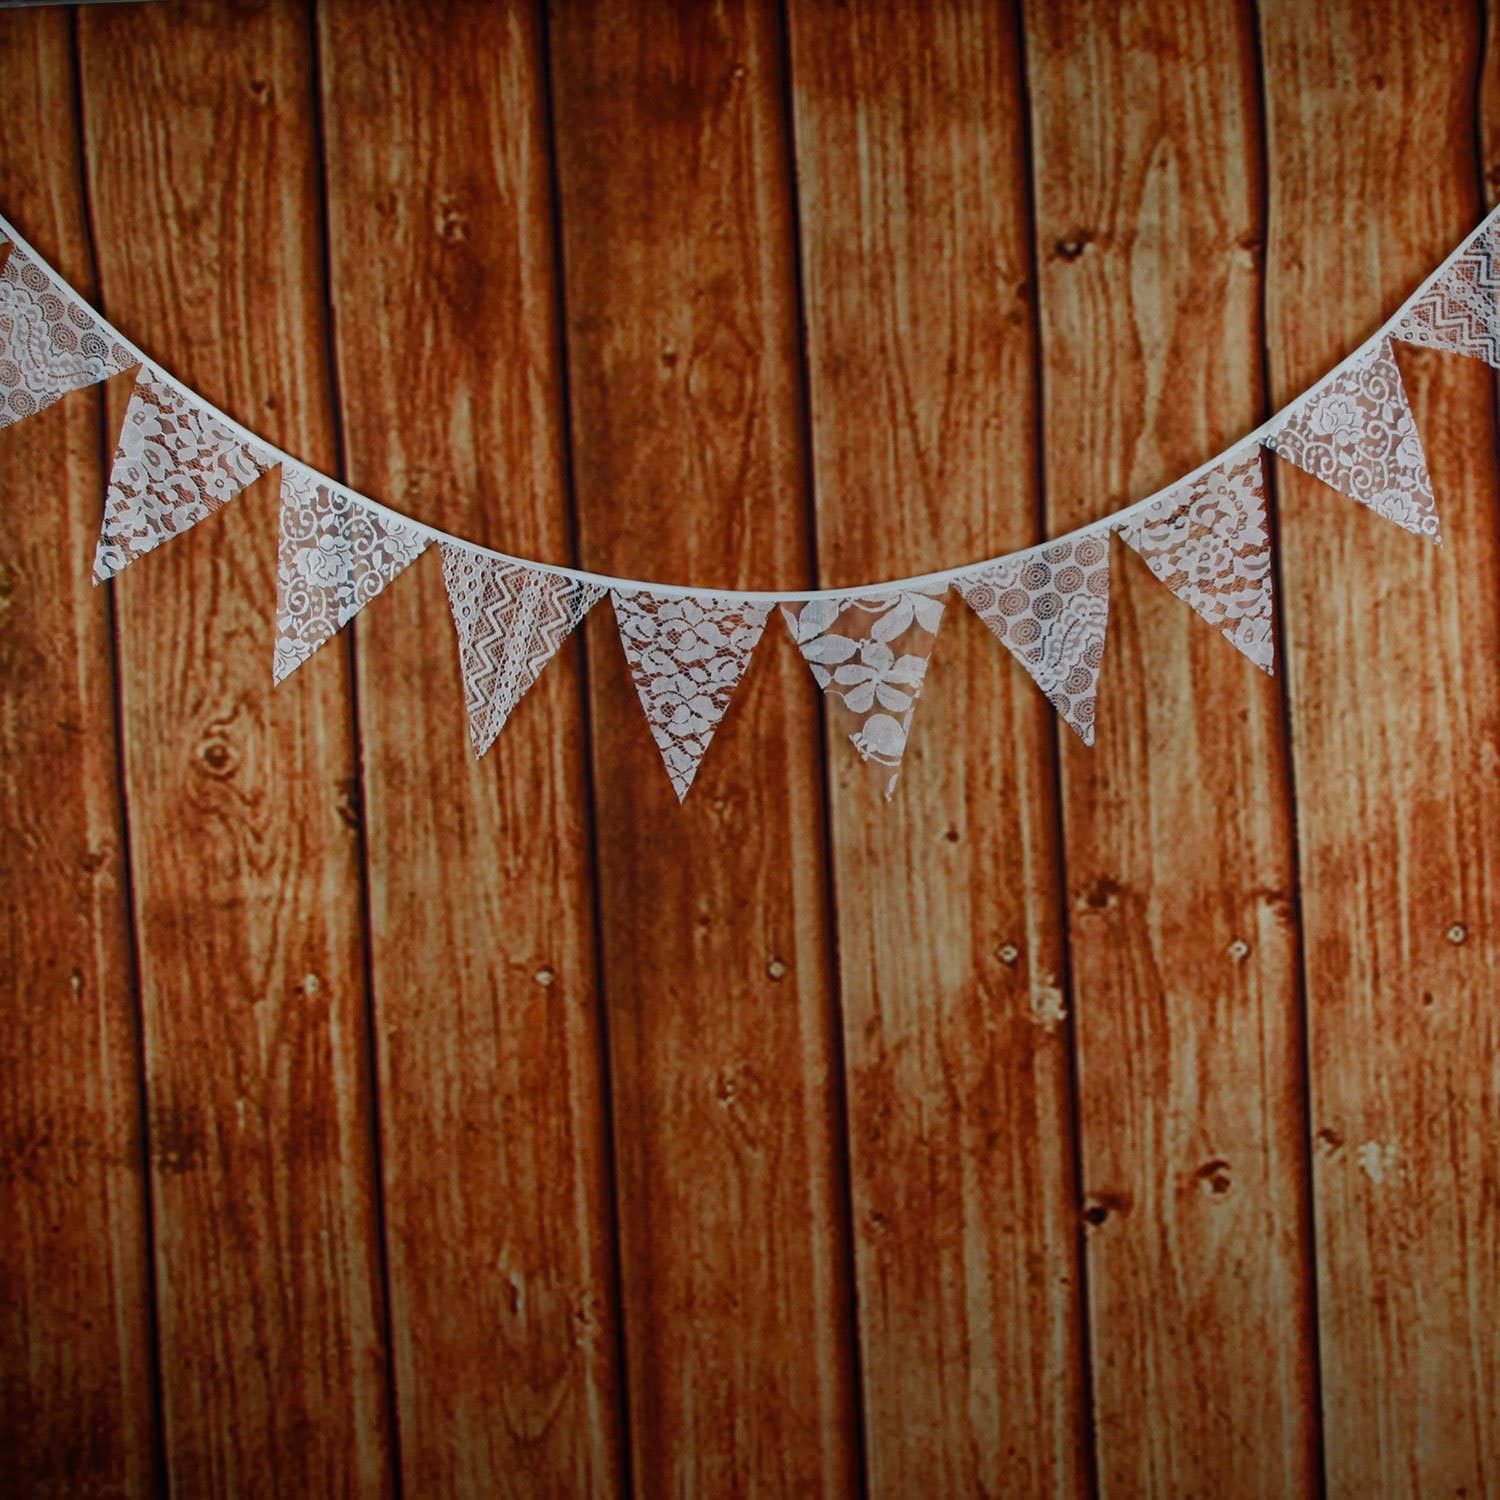 Outdoor /& Home Decoration Birthday Party White INFEI 3M//9.8Ft Mixed White Lace Fabric Flags Bunting Banner Garlands for Wedding